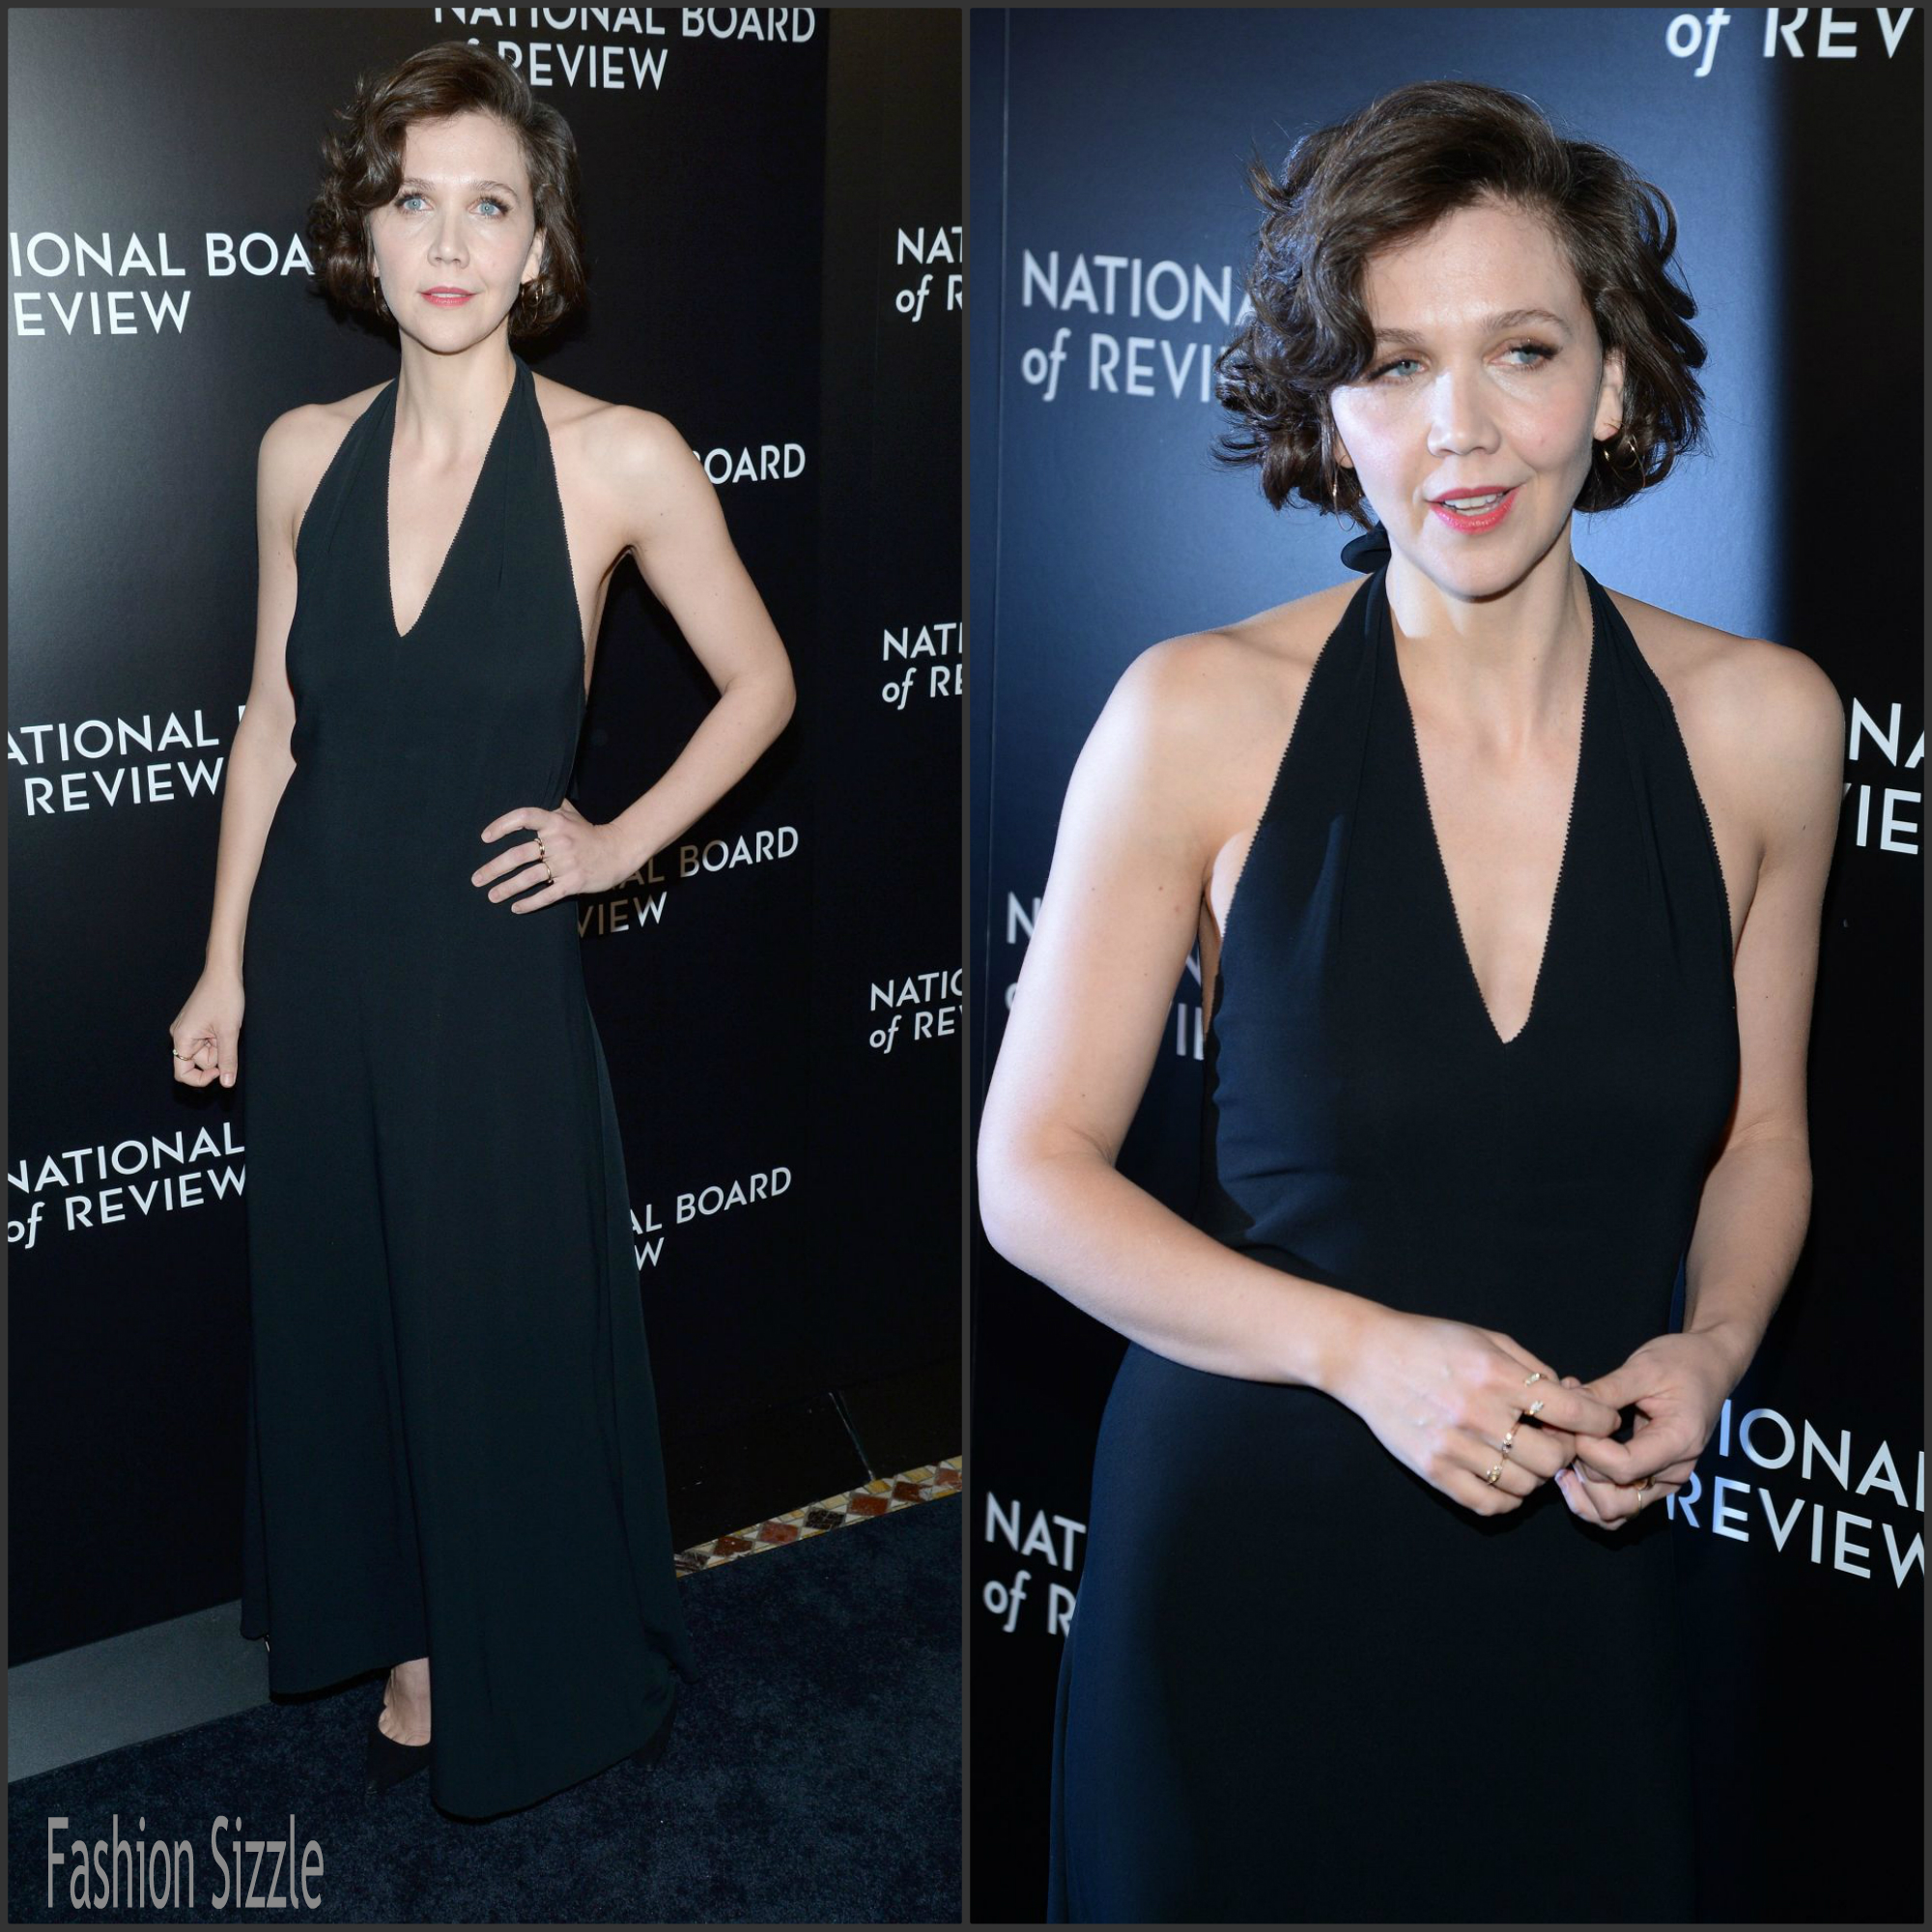 maggie-gyllenhaal-in-the-row-dress-2016-national-board-of-review-awards-gala